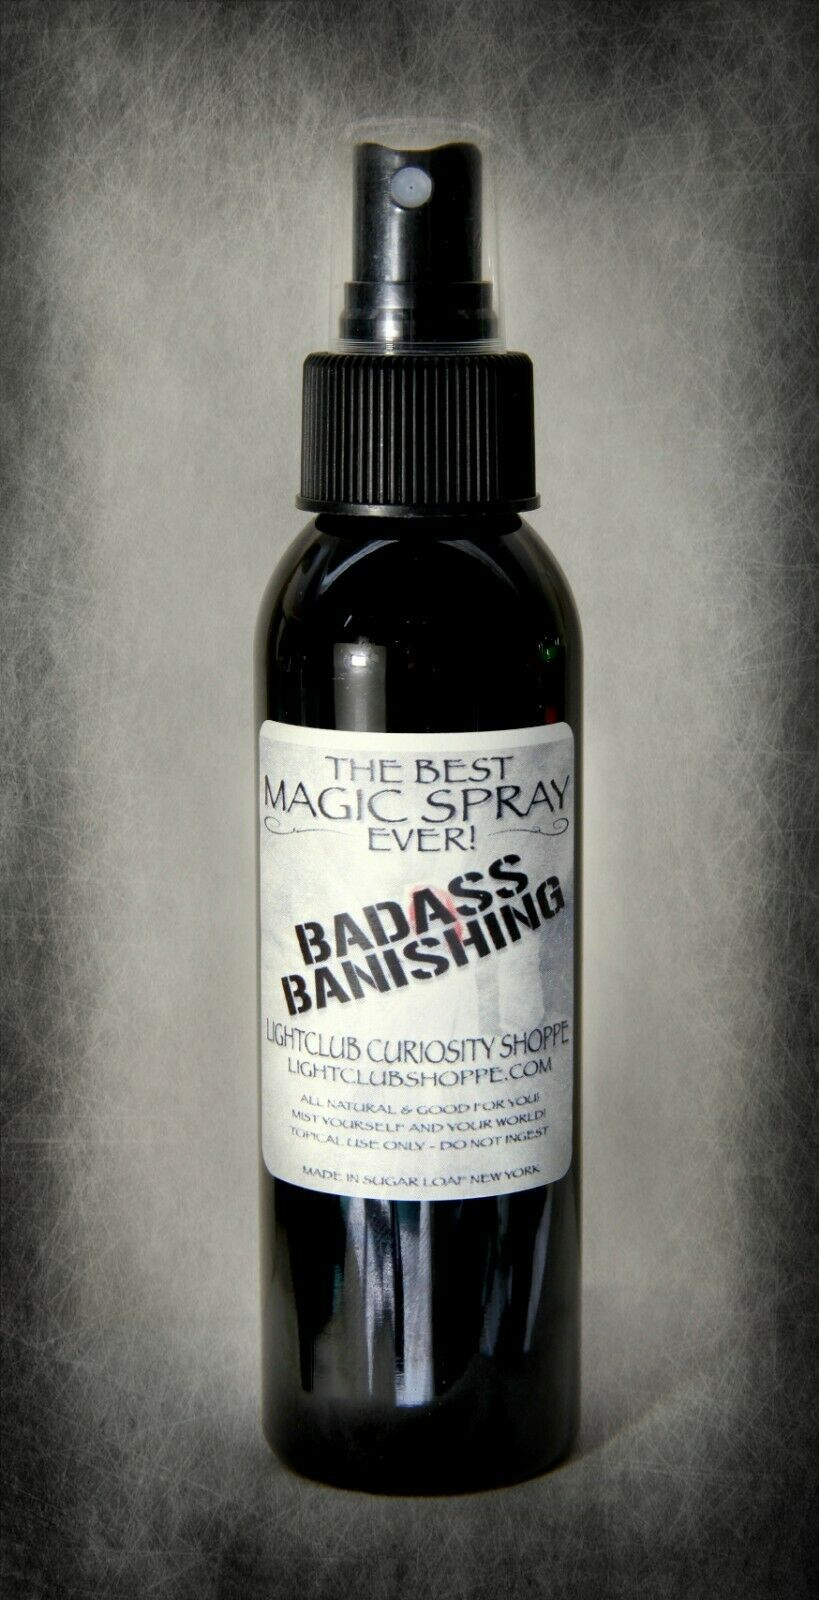 The Best Magic Spray Ever Wiccan Spell Spray Badass Banishing  PROTECTION  AVOIDANCE  END DRAMA The Best Magic Spray Ever